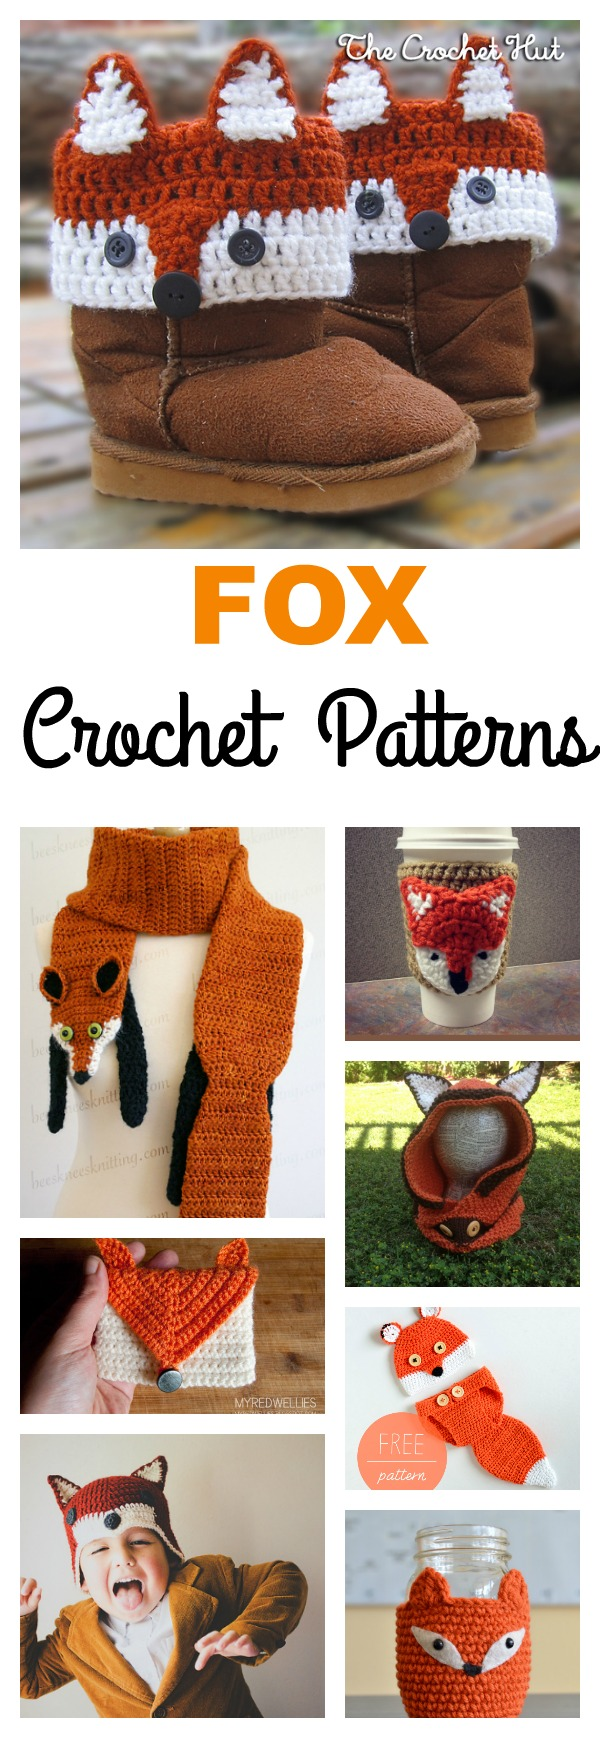 10 Crochet Fox Patterns